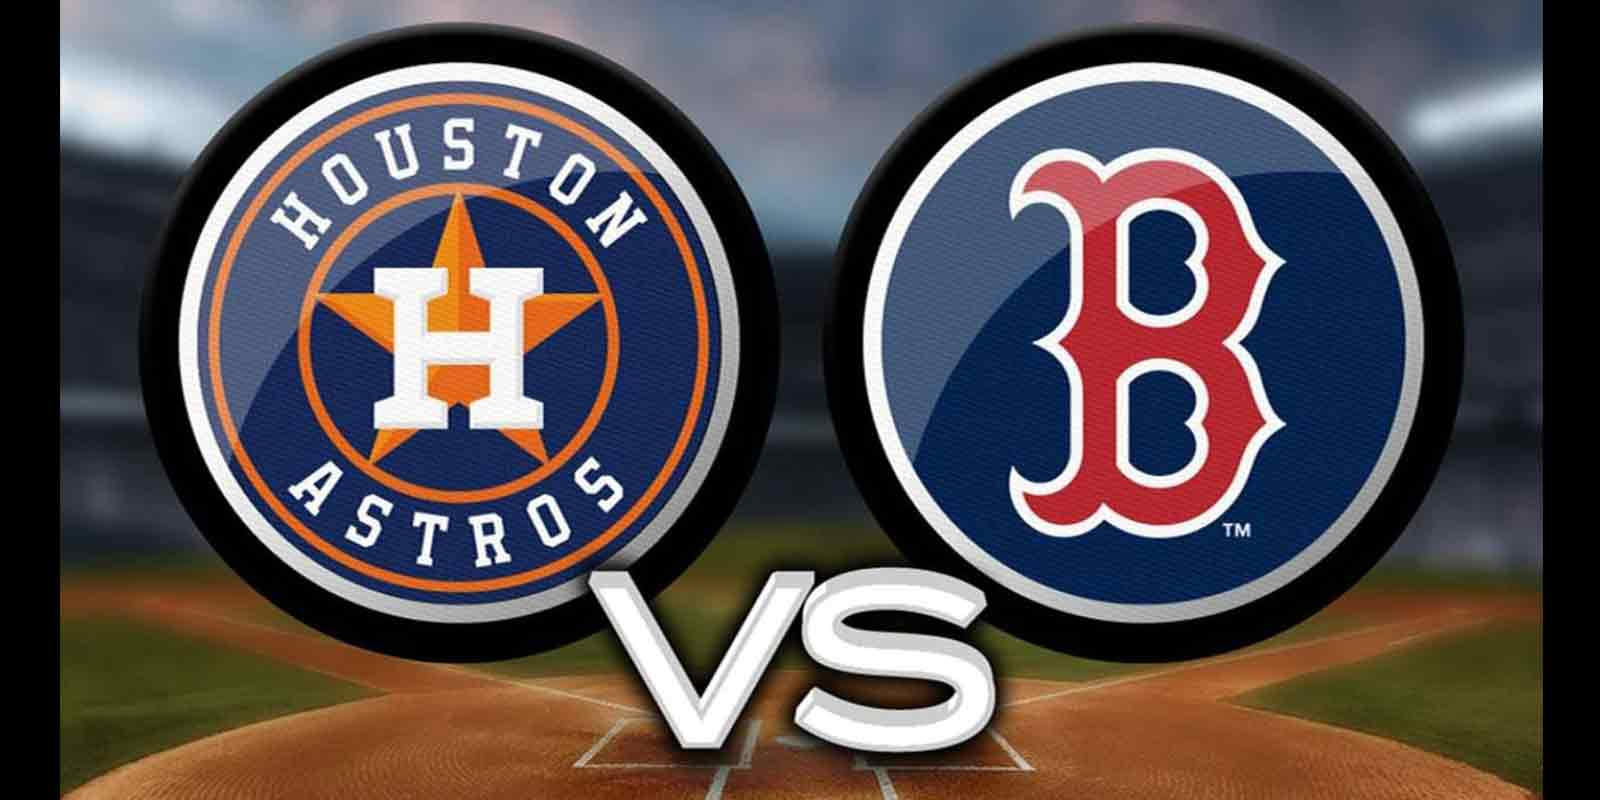 Red Sox v  Astros 2017 Live Stream: Time, Channel (Watch